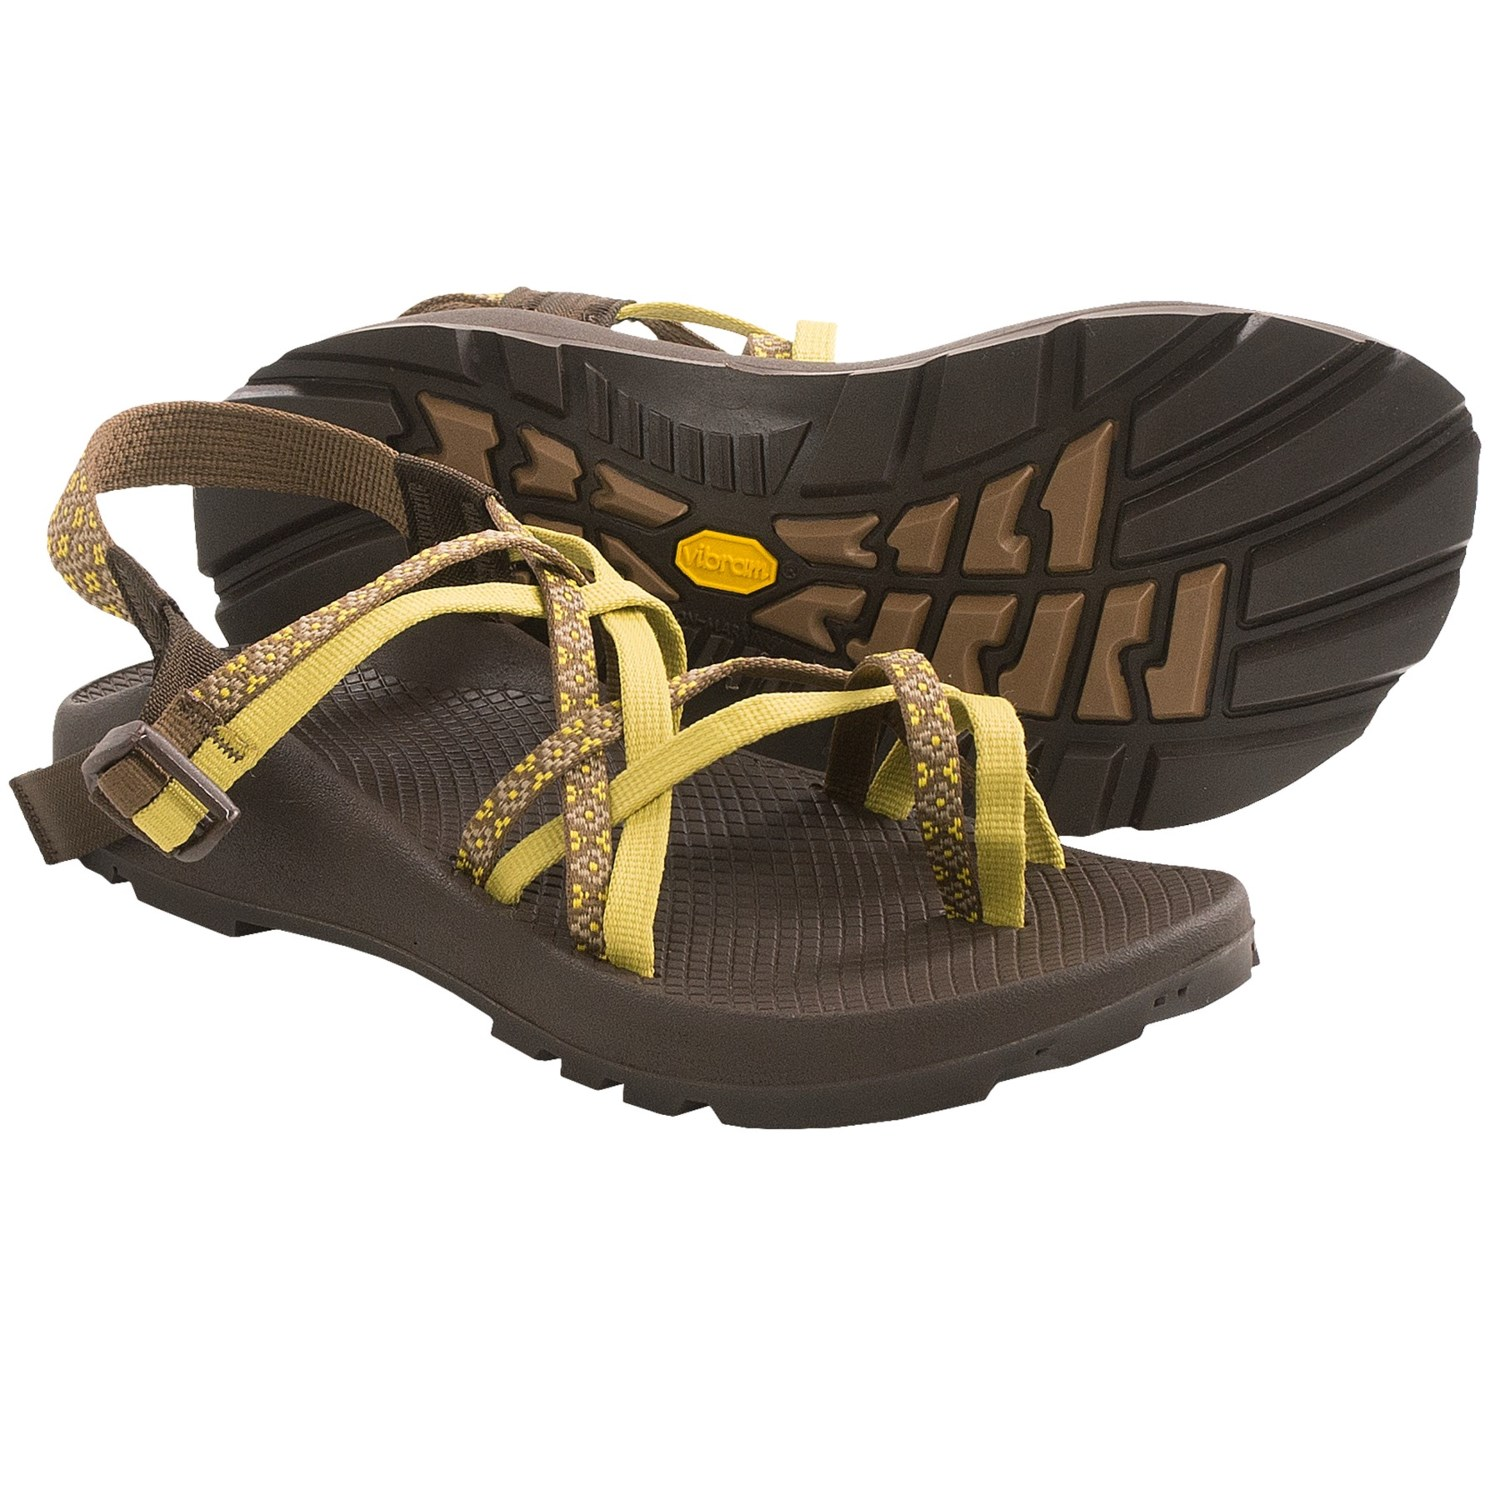 Cool Chaco Addison Sandals For Women 8141J  Save 74